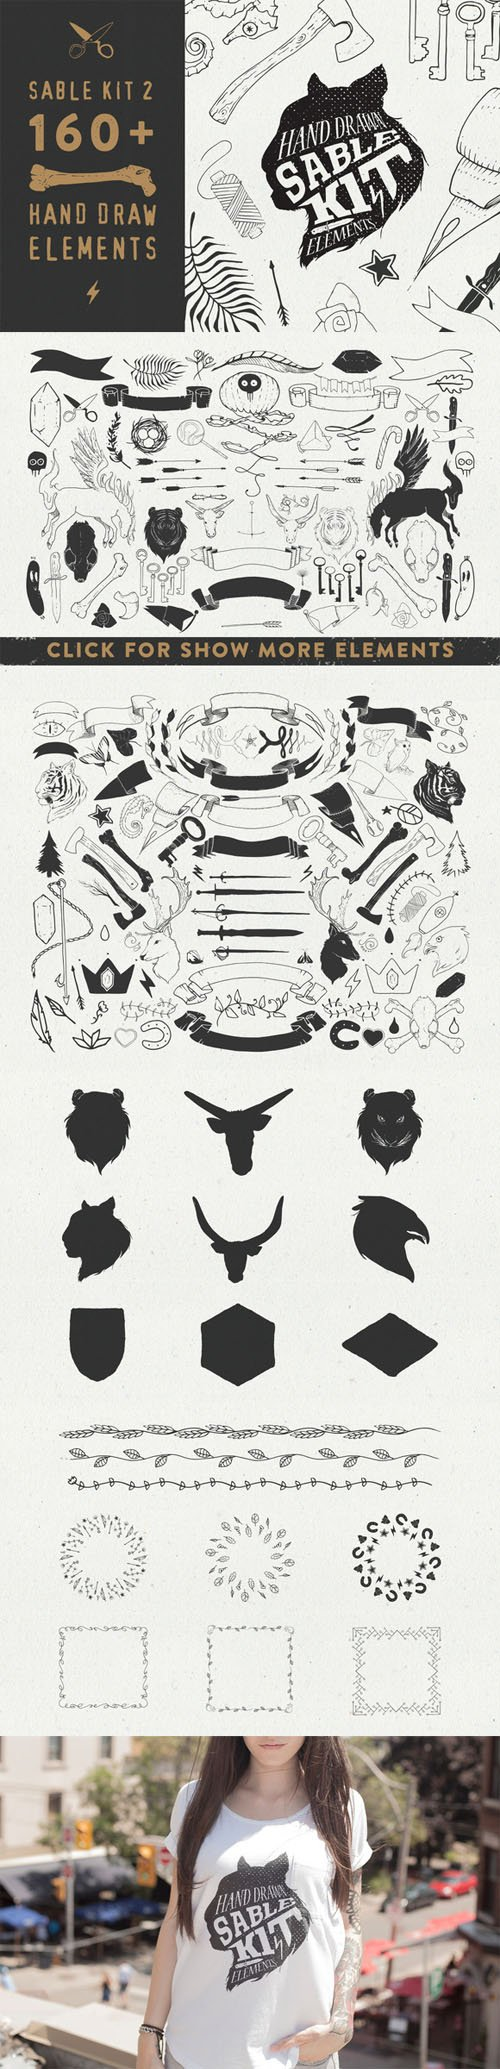 Sable Kit 2 - hand drawn collection - Creativemarket 88245